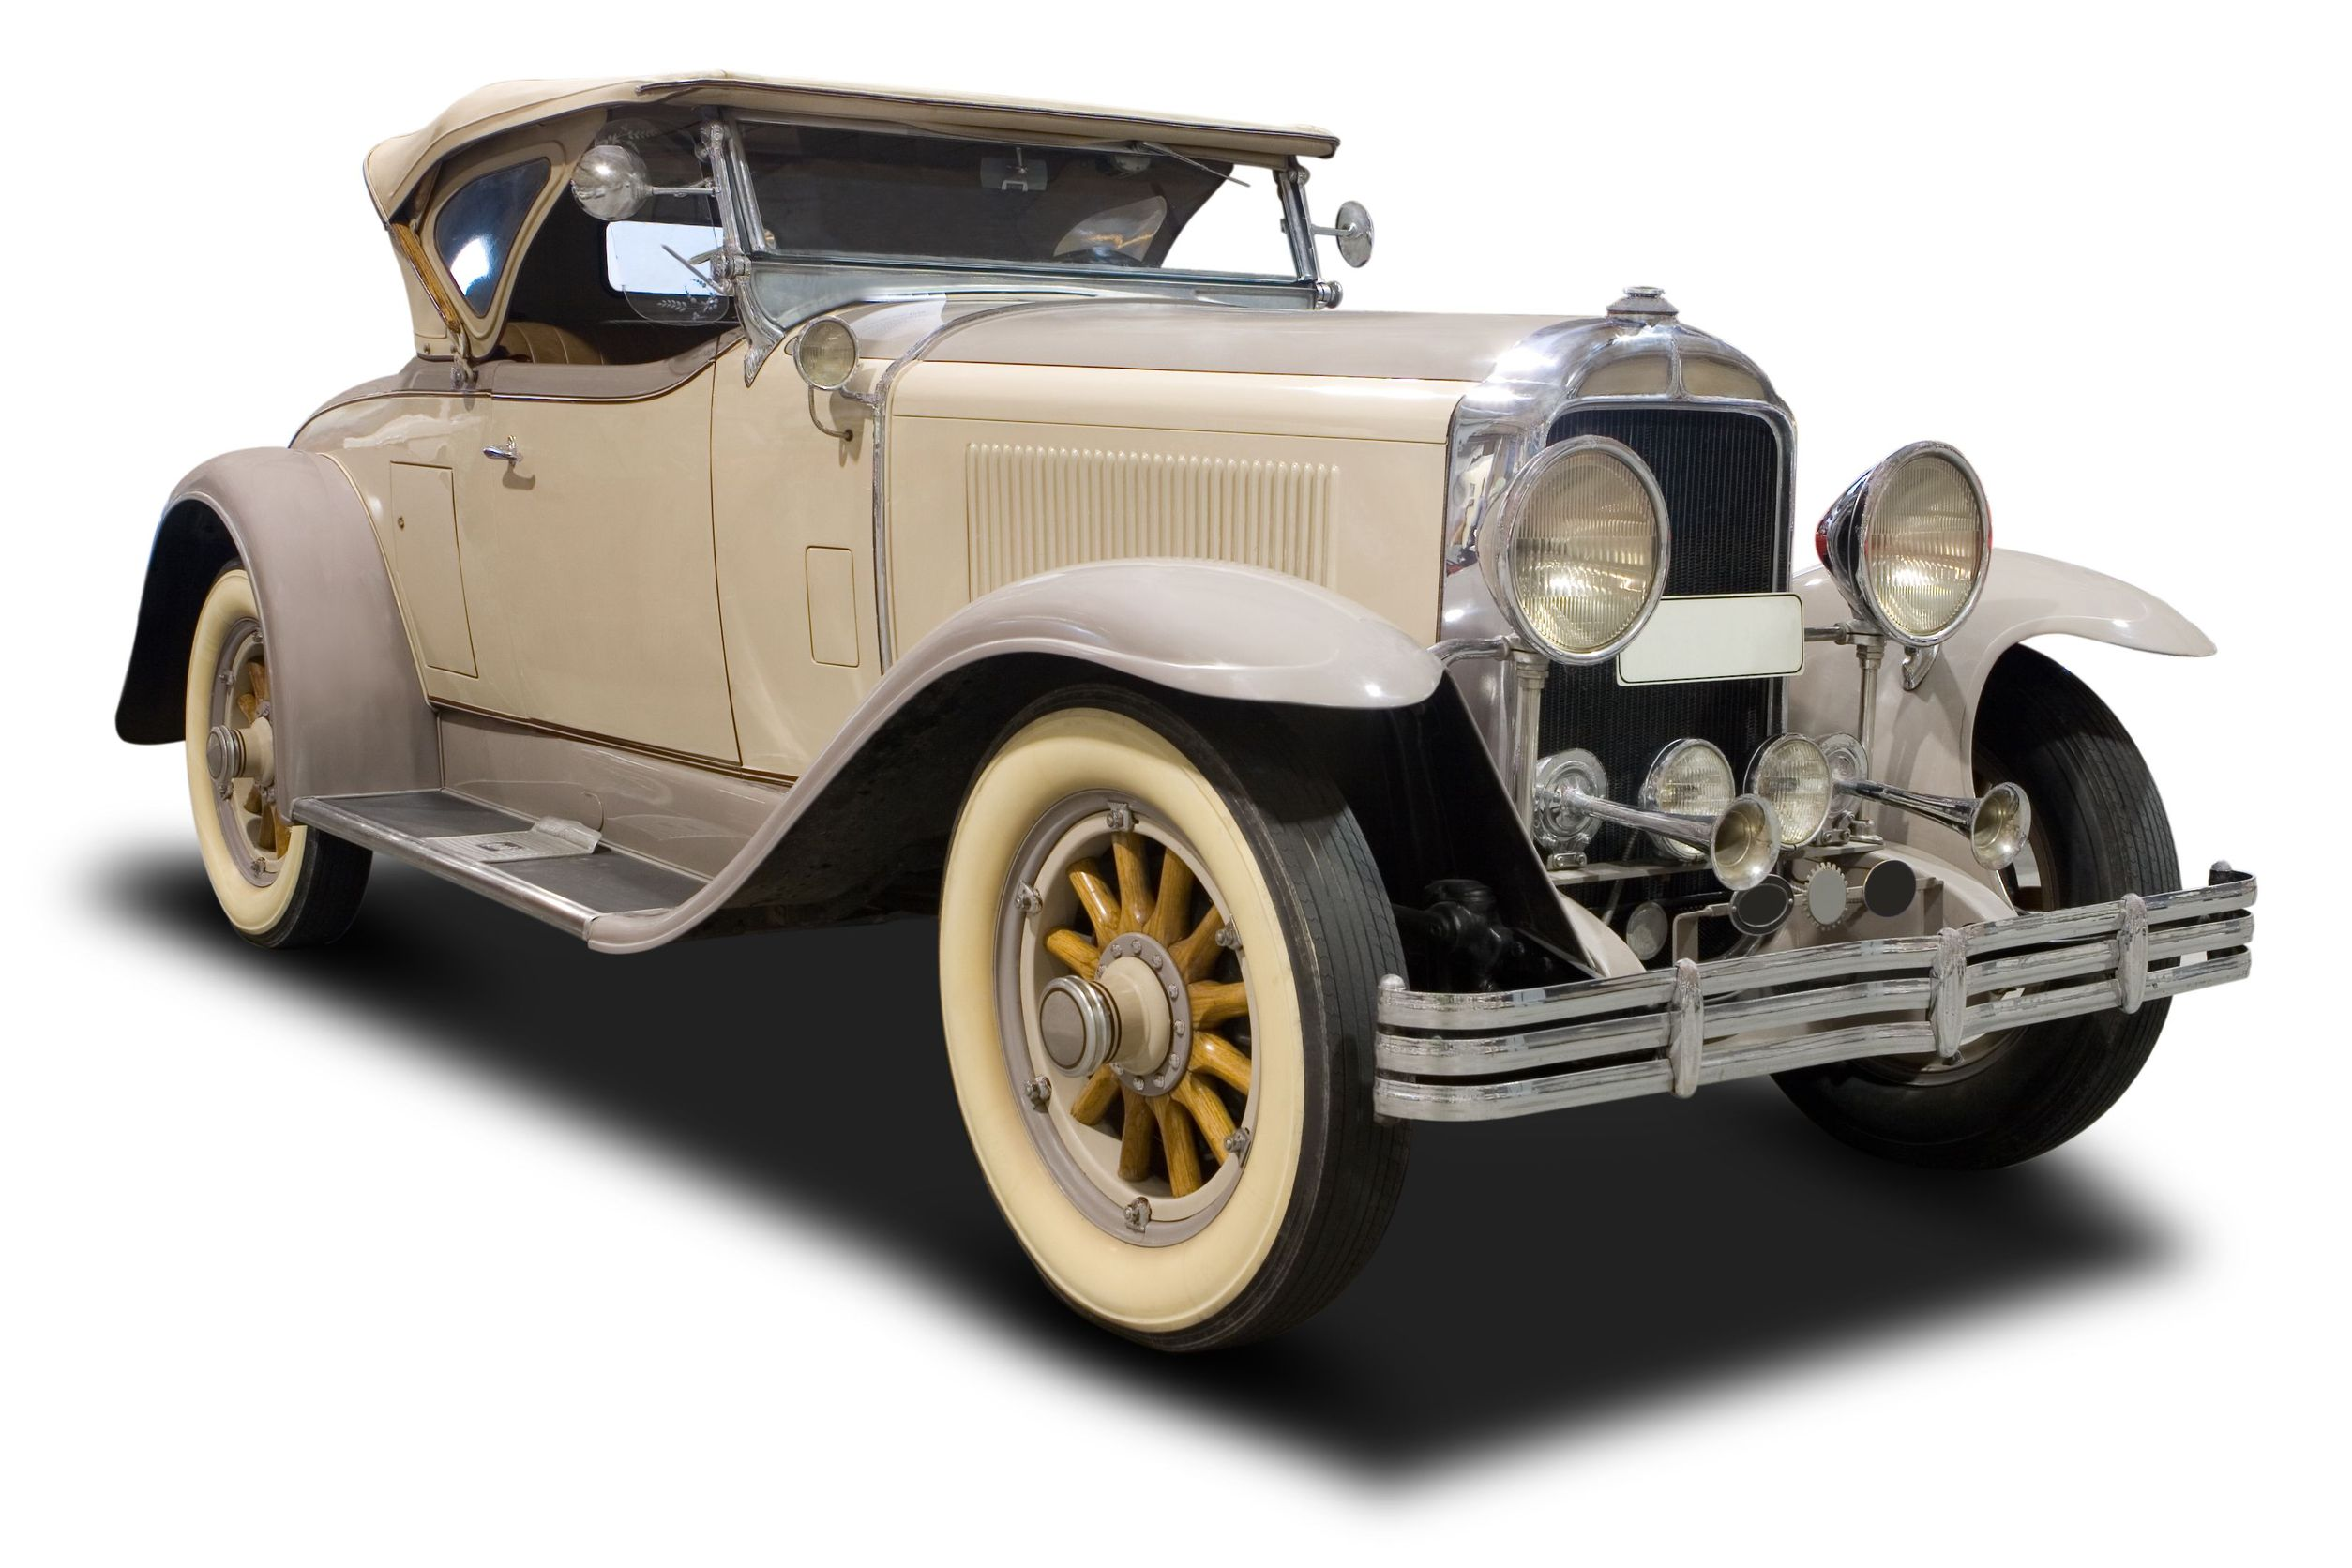 Funky Old Motor Cars Collection - Classic Cars Ideas - boiq.info